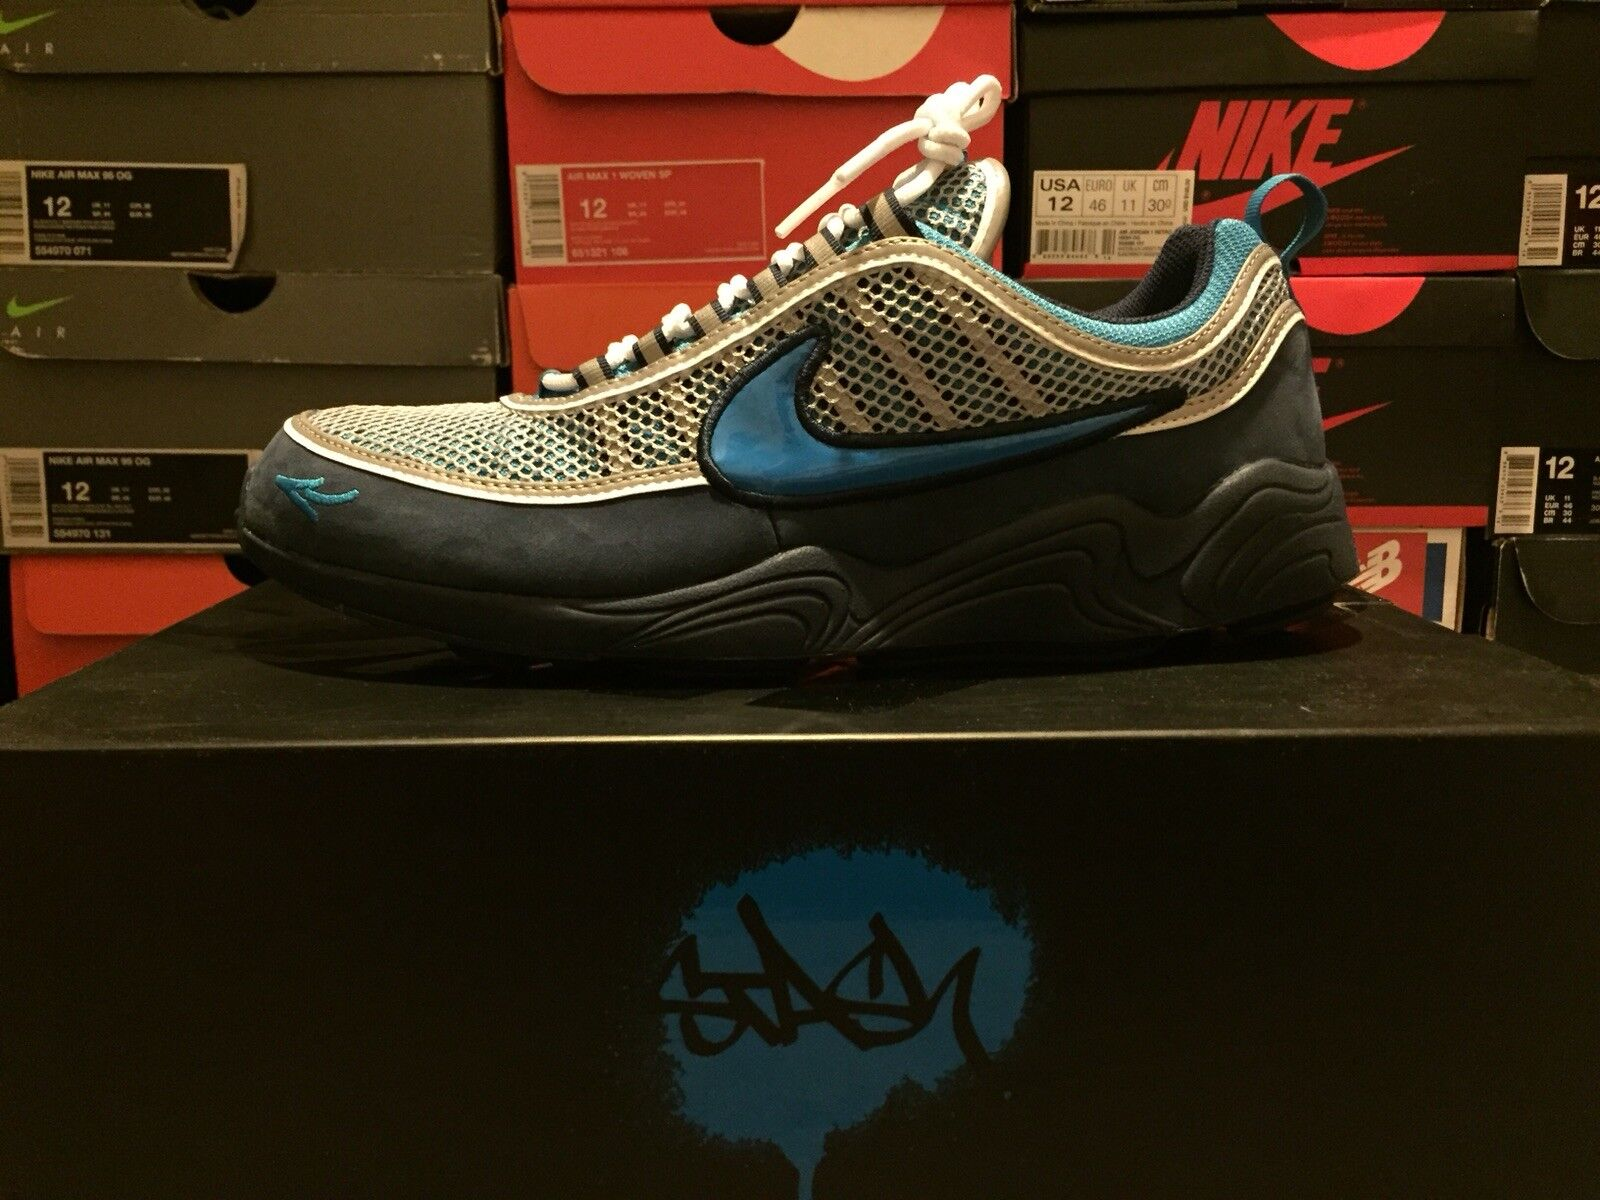 Men's Sz 12 Stash x Nike Air Zoom Spiridon 16 Blue Heritage Cyan AH7973-400 best-selling model of the brand